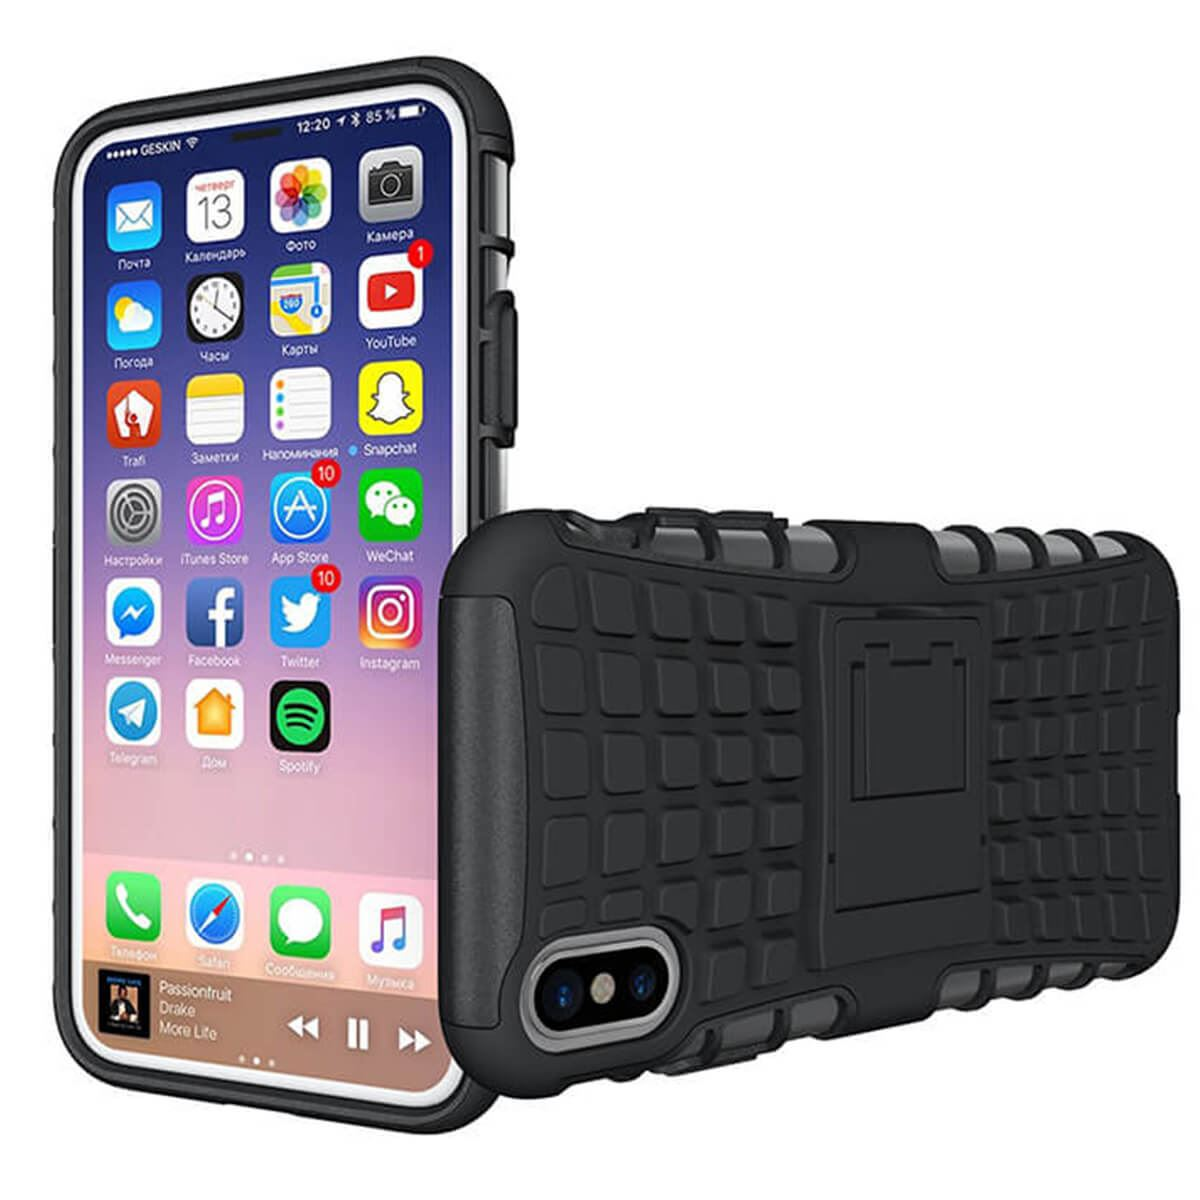 Shockproof-Case-Apple-iPhone-10-X-8-7-6s-Se-5-Hard-Heavy-Duty-Stand-Armour-Cover thumbnail 4